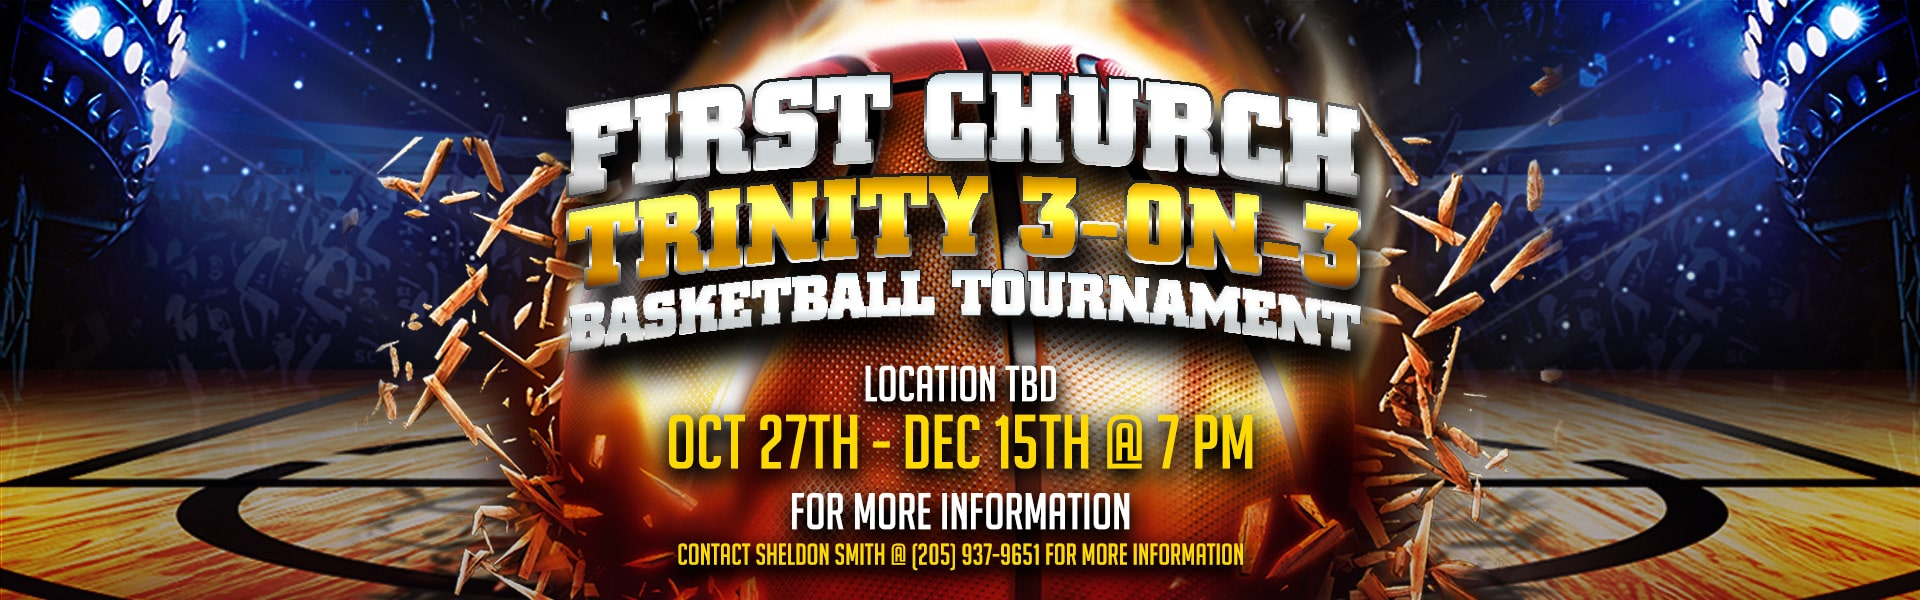 FC Intramural Basketball – Web Banner